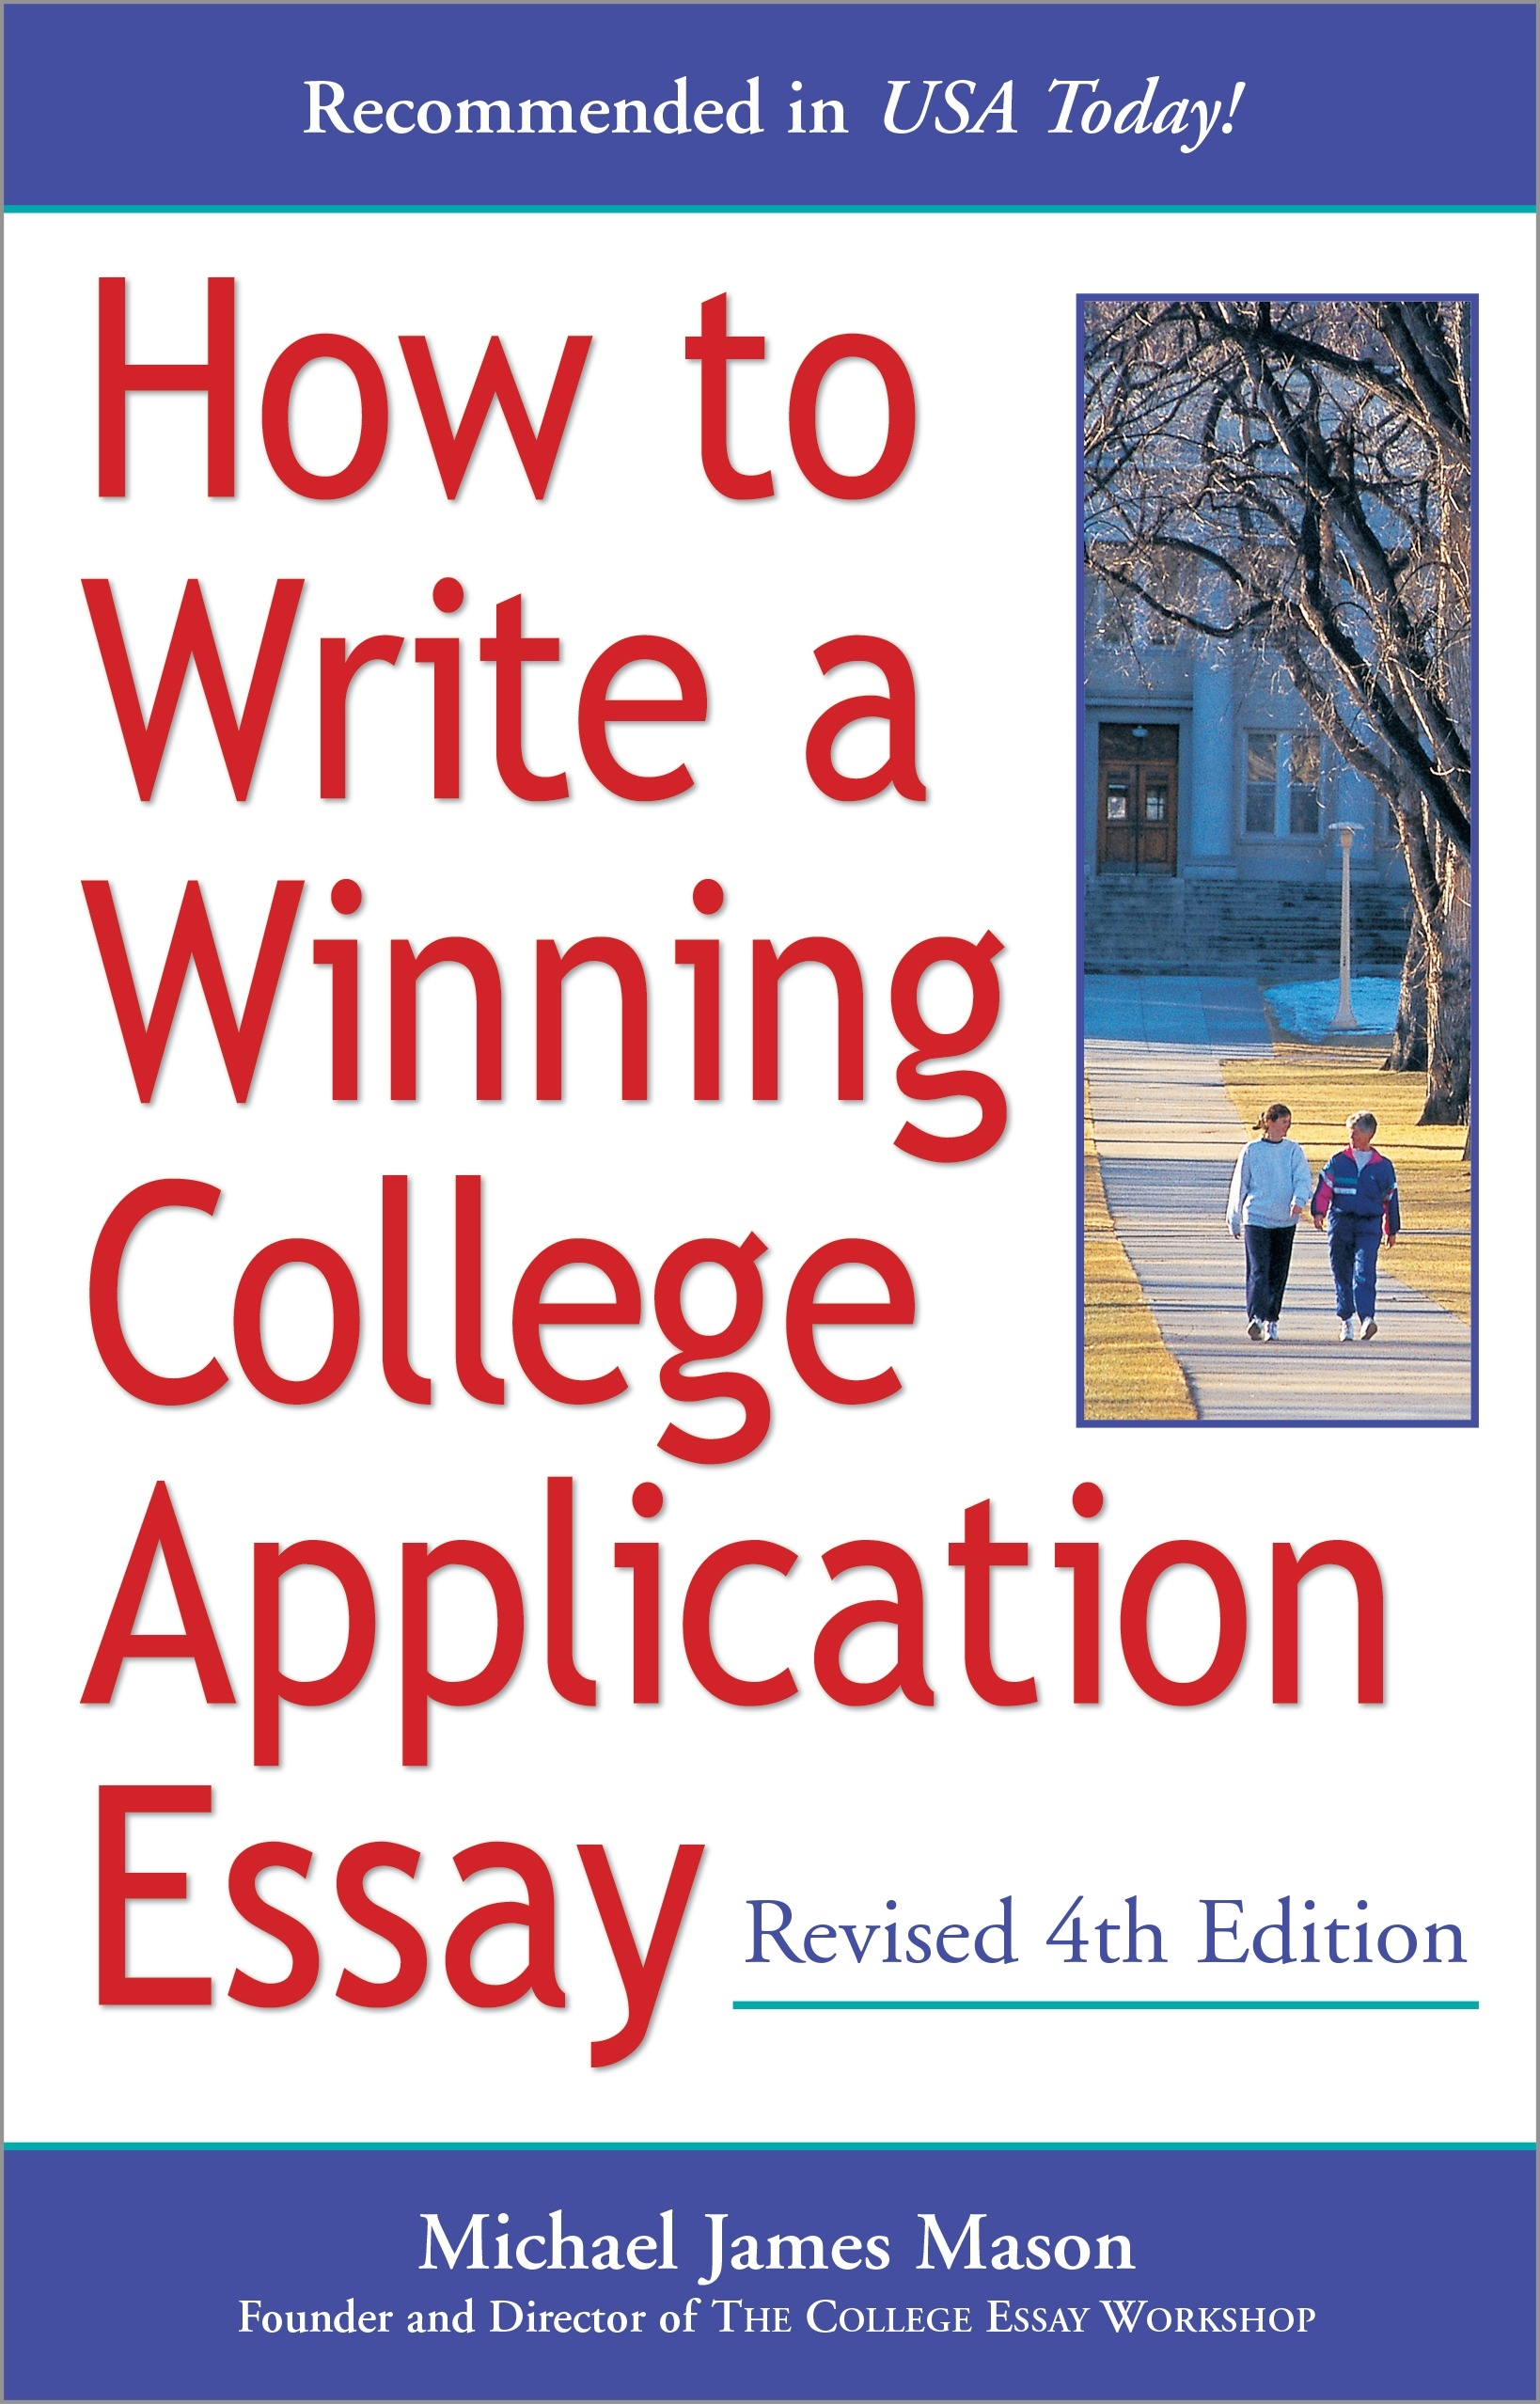 How To Make A Book Cover App : How to write a winning college application essay revised